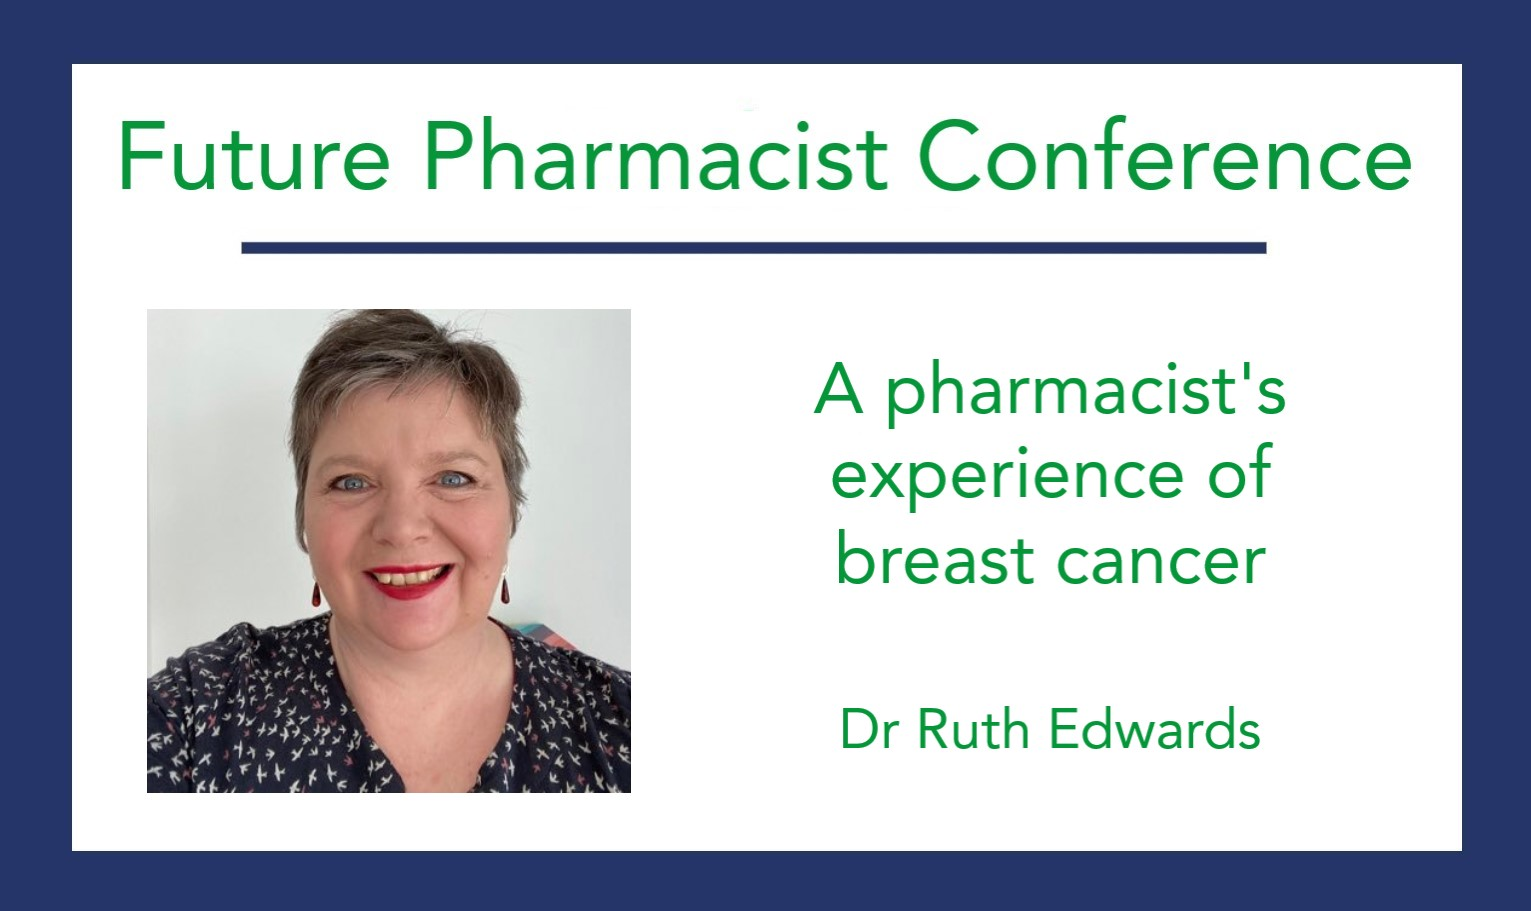 A pharmacist's experience of breast cancer